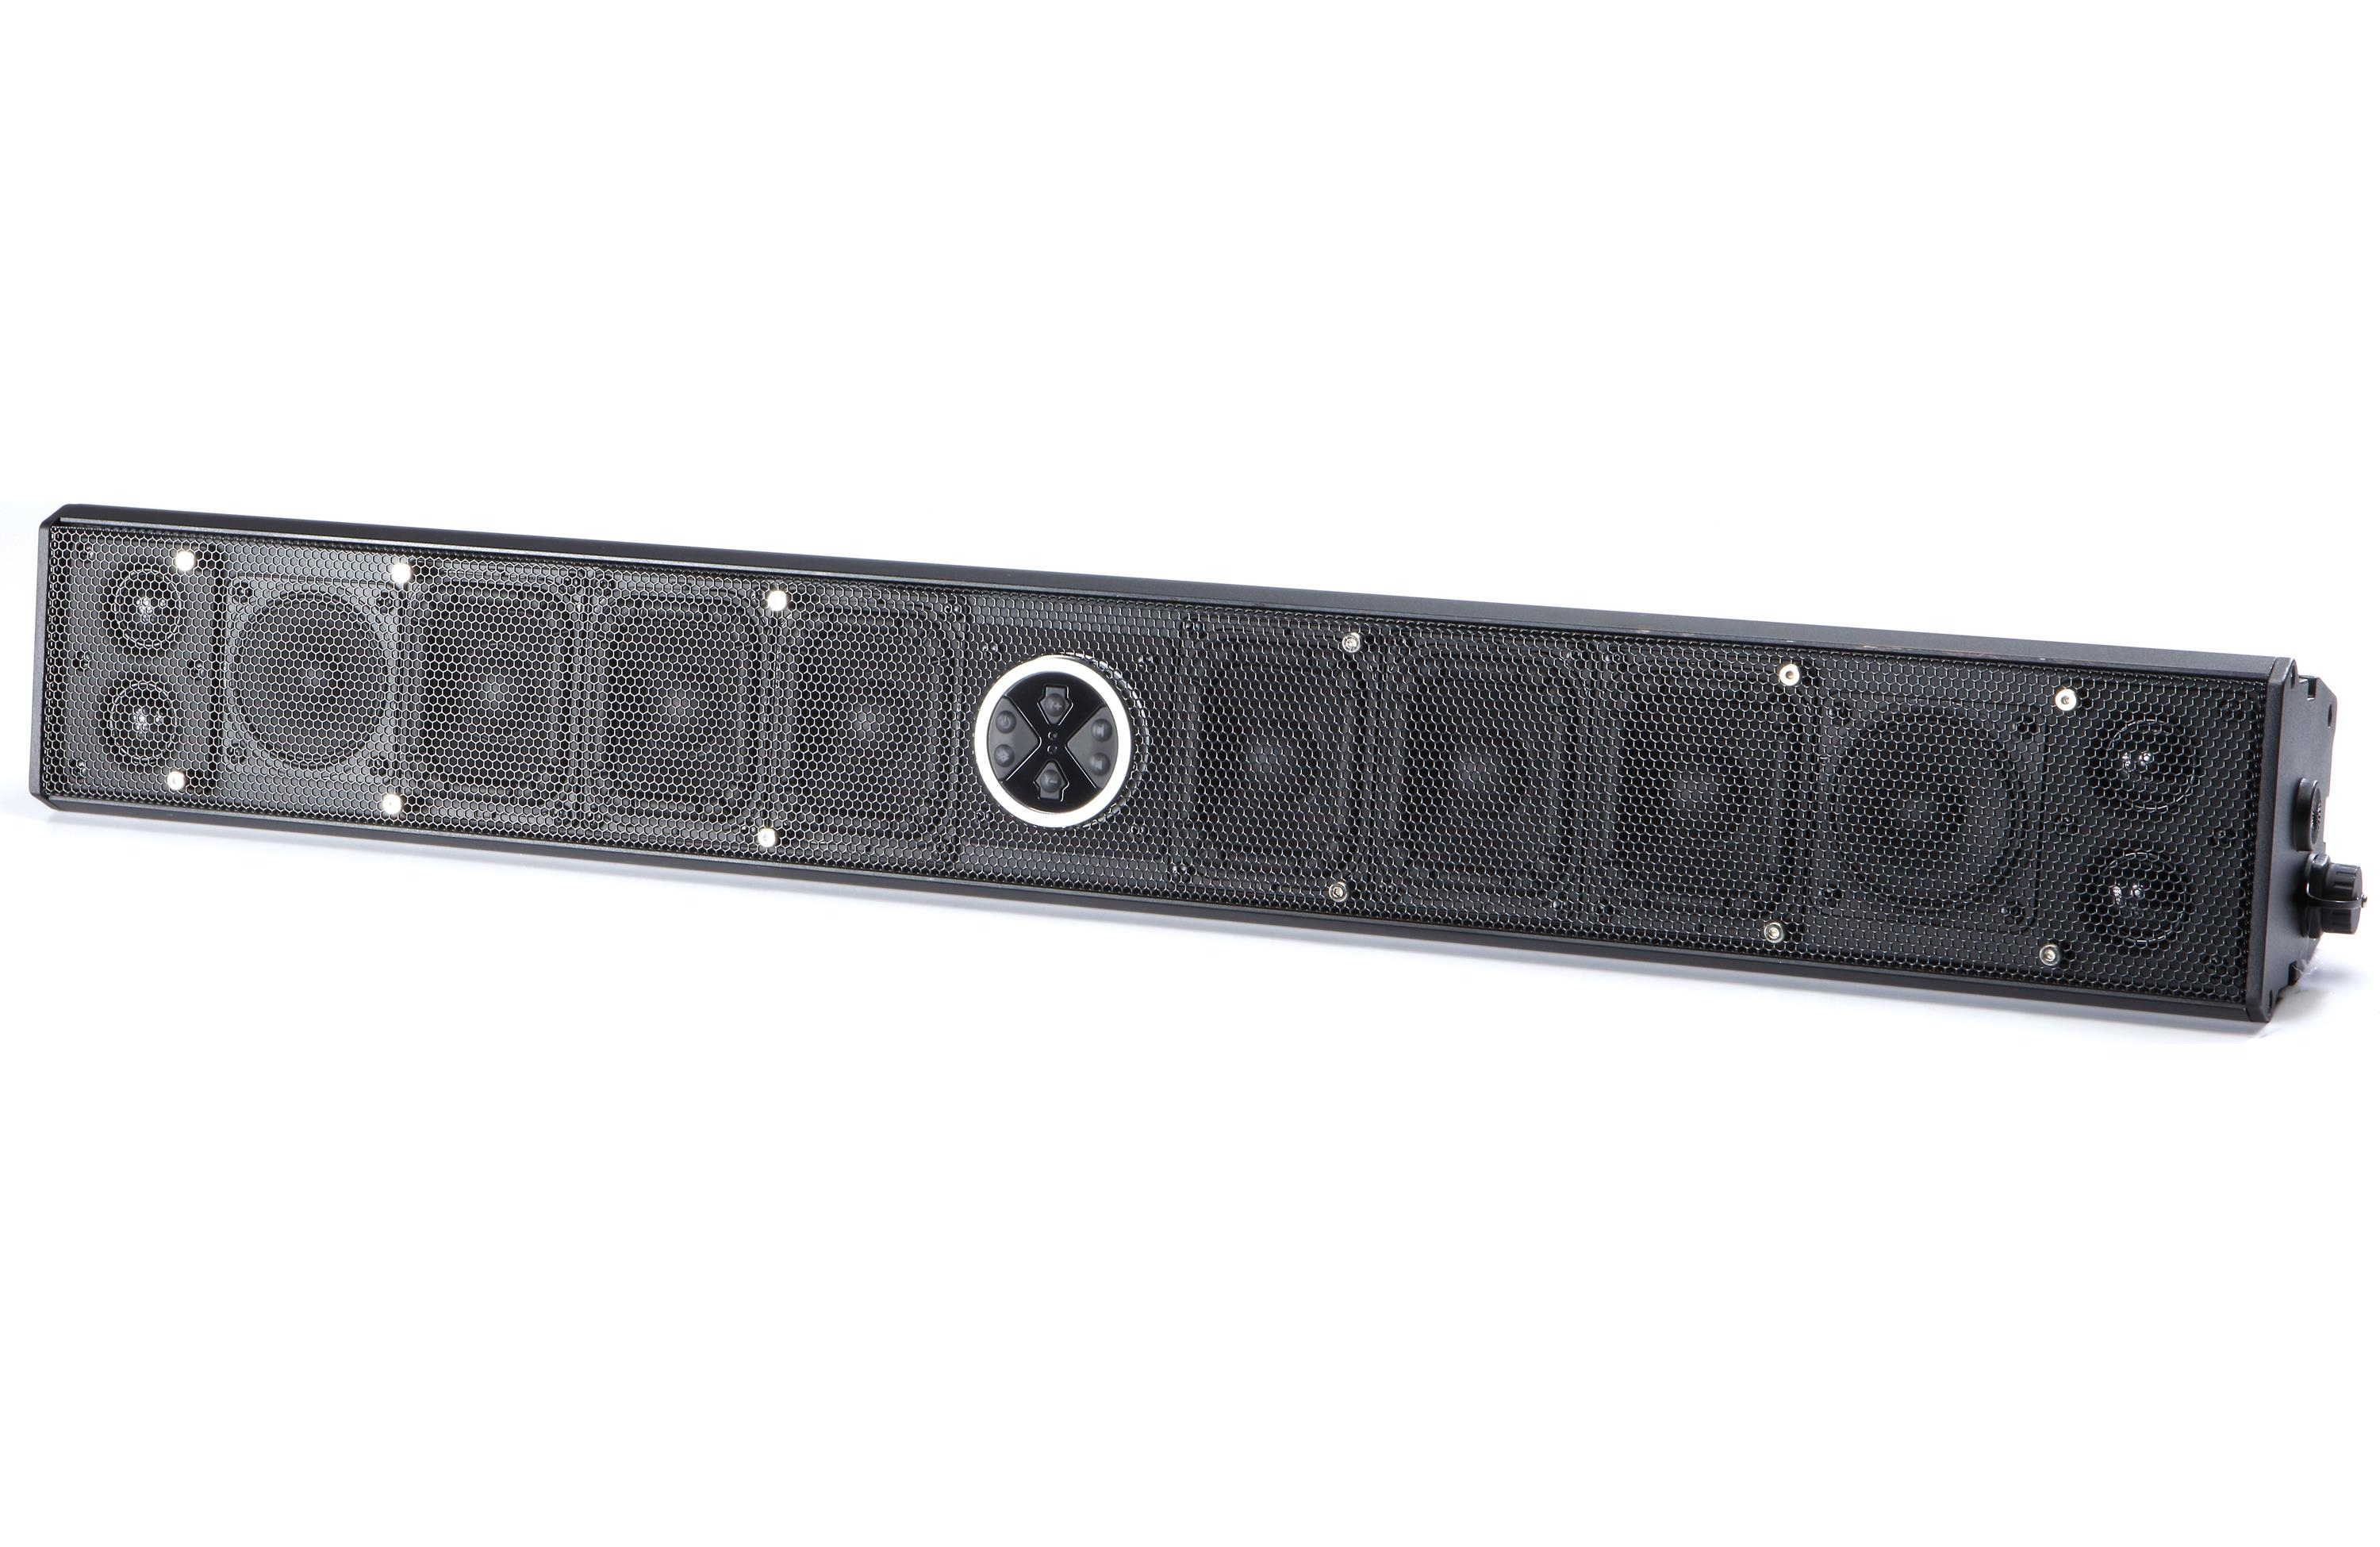 Powerbass XL-1200 Power Sports Sound Bar